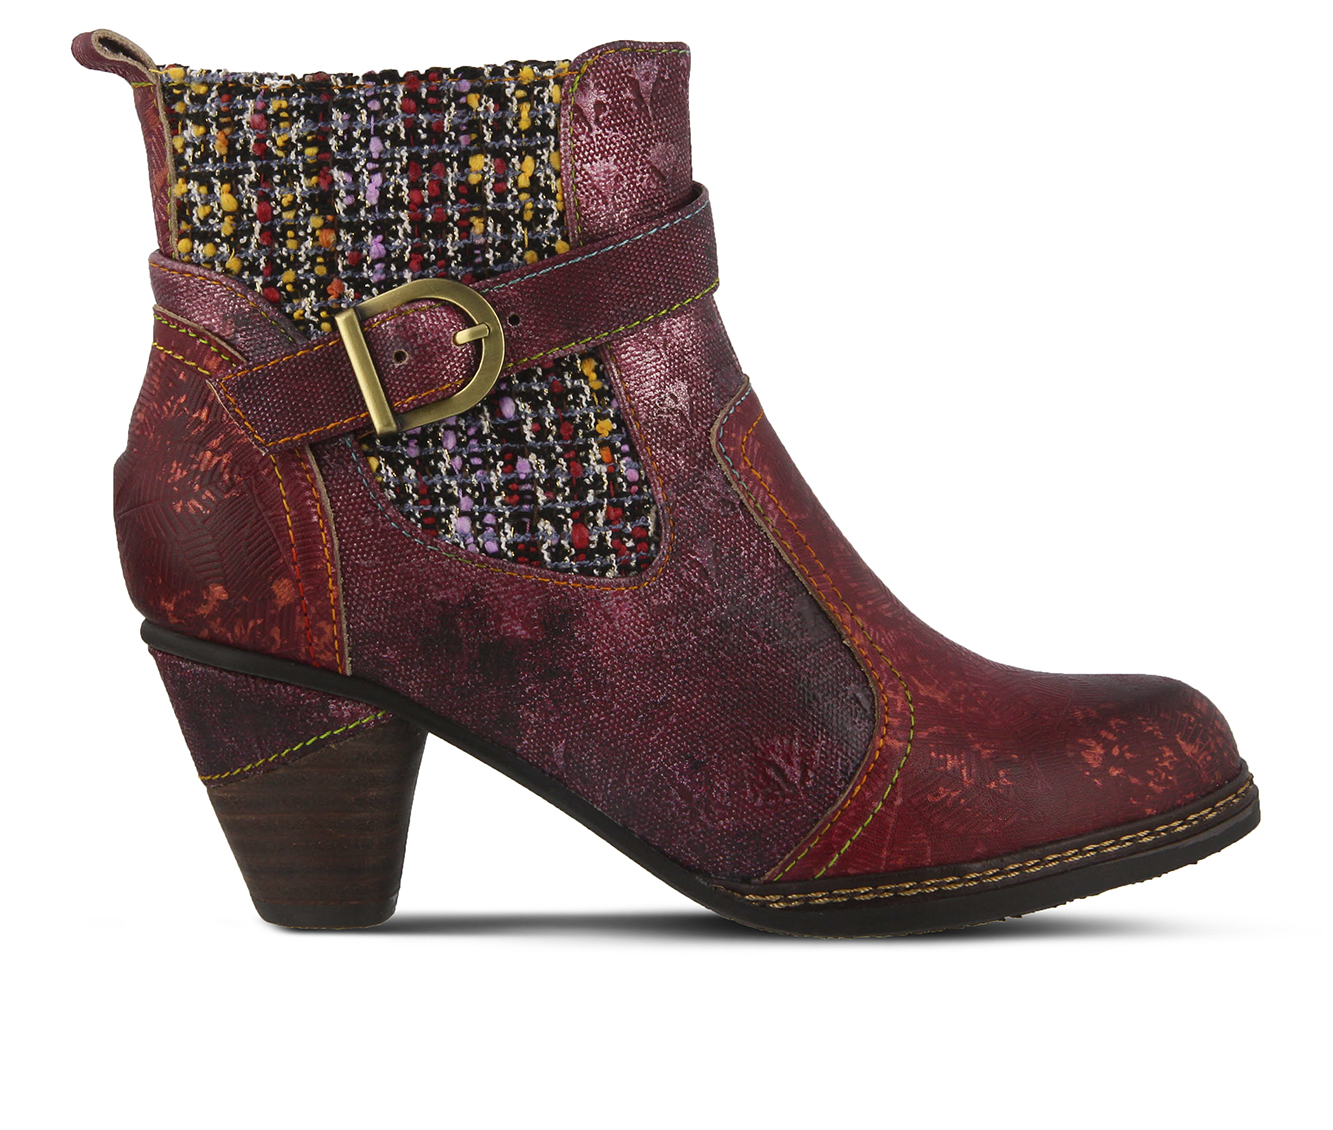 L'Artiste Nancies Women's Boots (Red Leather)